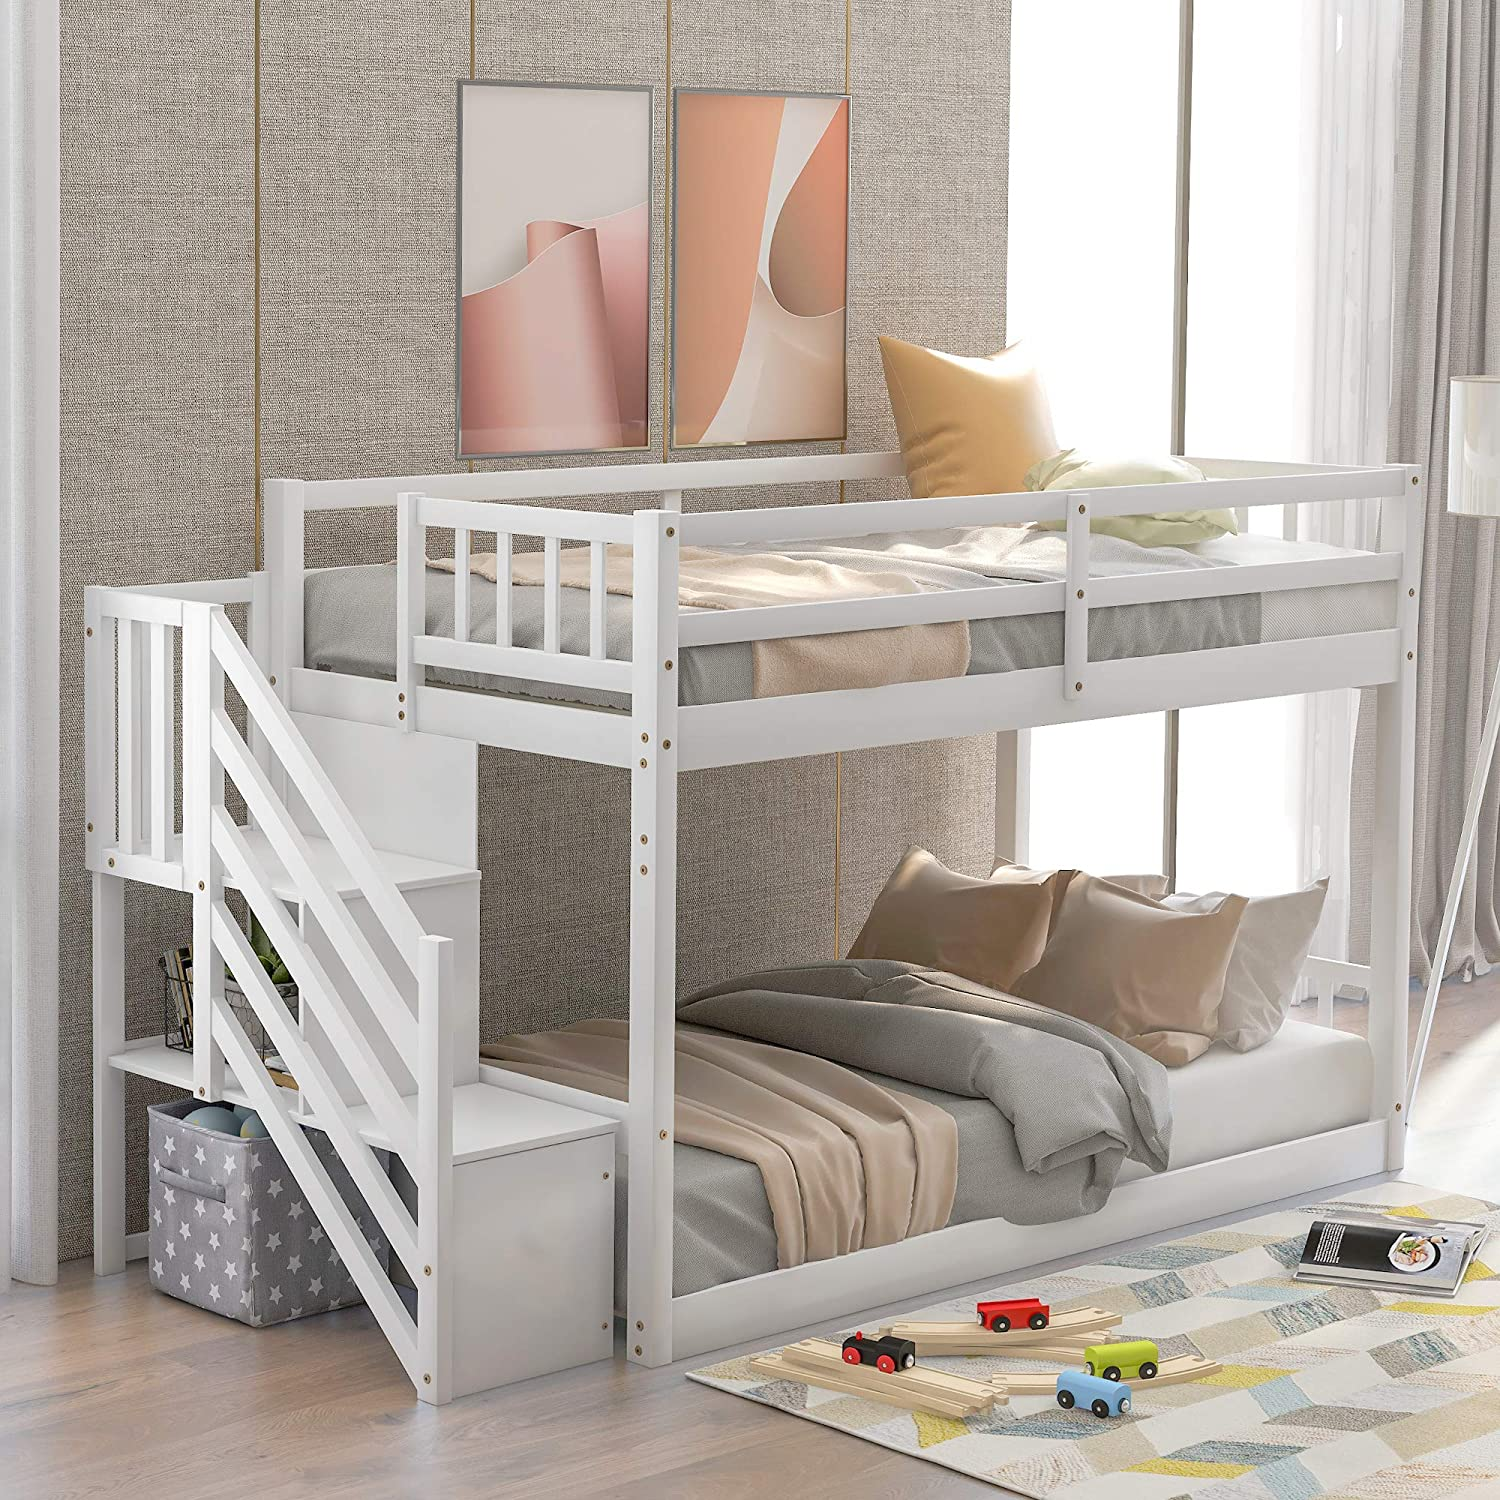 Twin Over Twin Bunk Bed For Kids Solid Wood Floor Twin Size Bed Frame With Safety Guardrails Ladder And Storage White Kitchen Dining